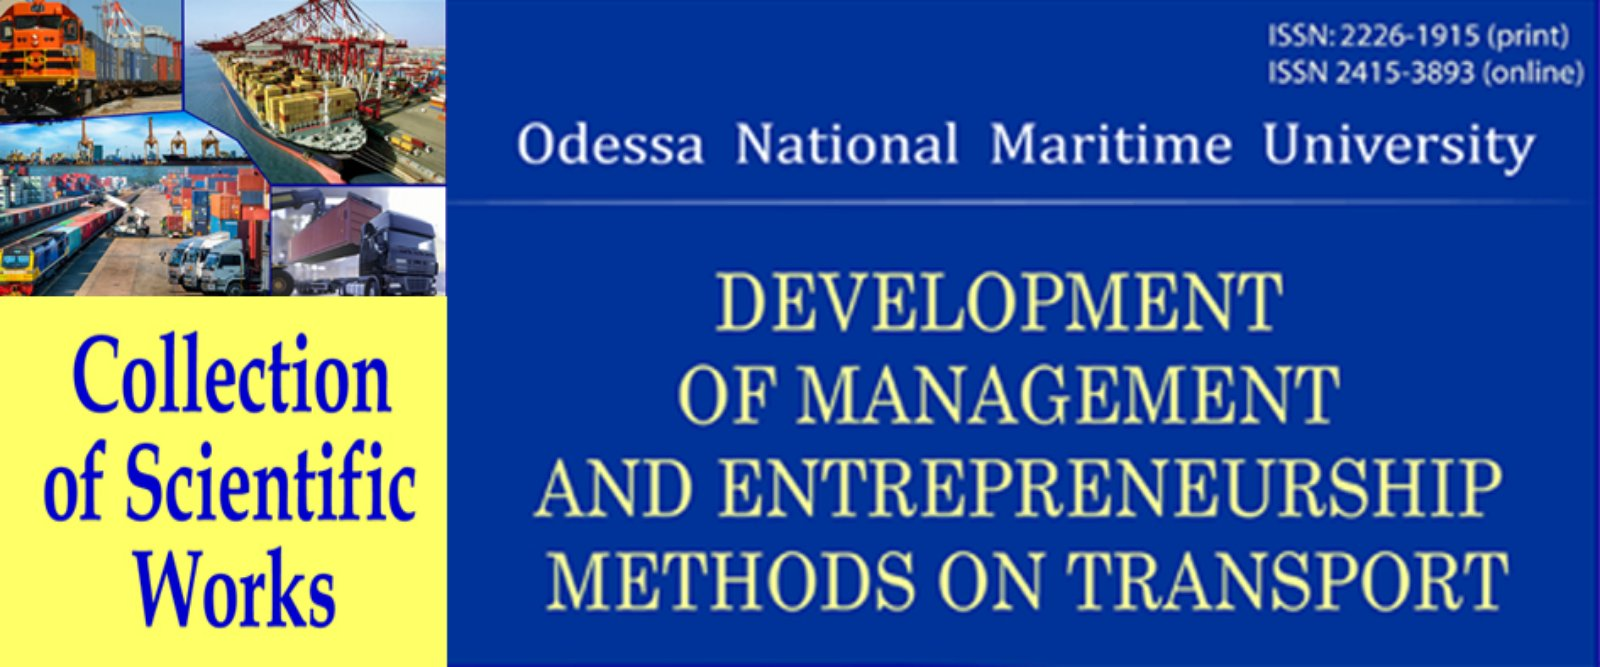 Development of management and entrepreneurship methods on Transport